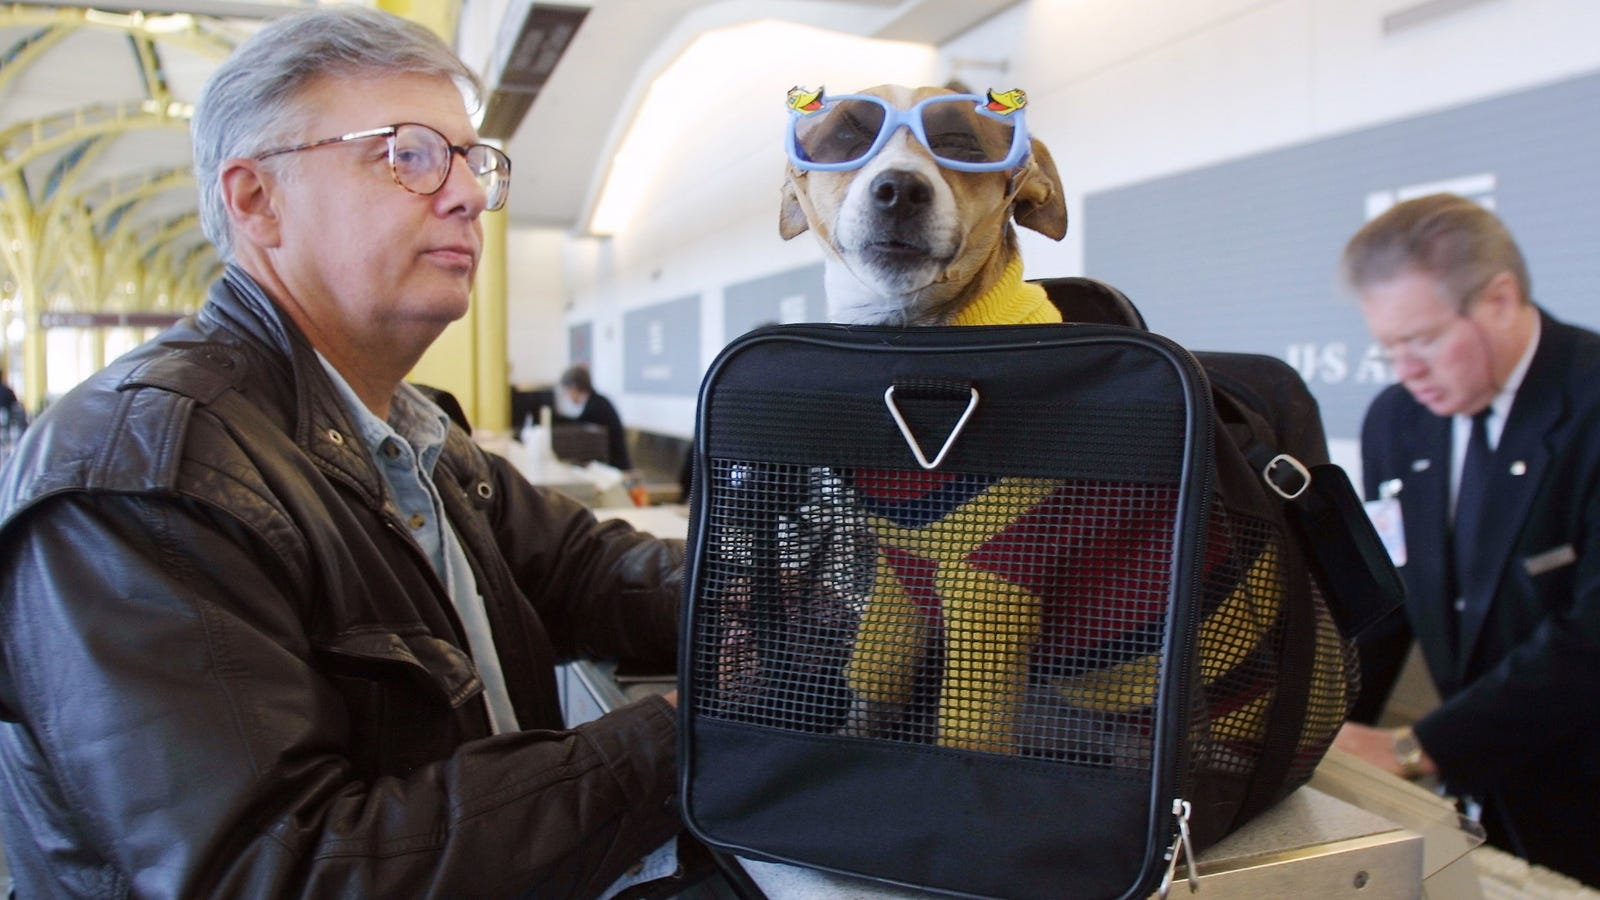 Where Your Emotional Support Animal Is Allowed to Sit on a Plane